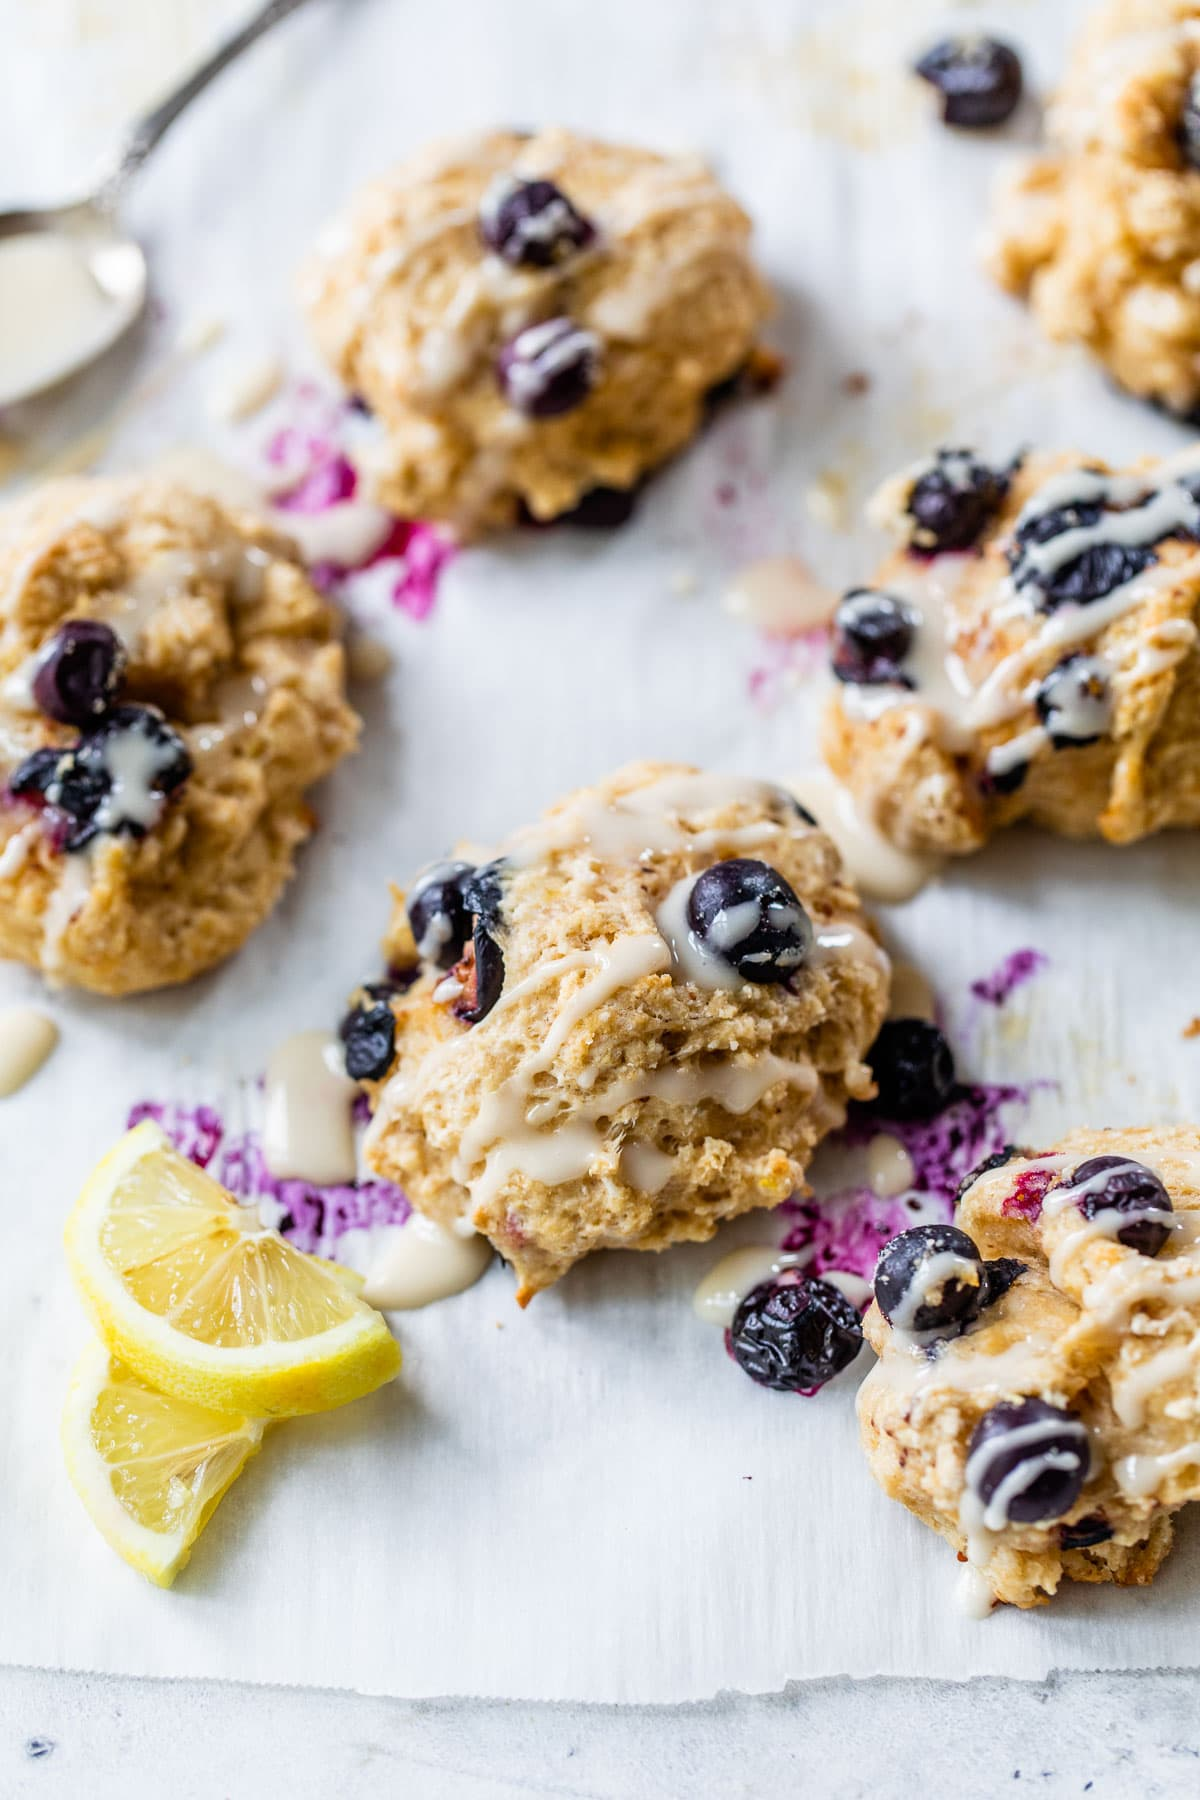 Blueberry Goat Cheese Drop Biscuits. Super fluffy and so easy to make. Simply mix, scoop, and bake!